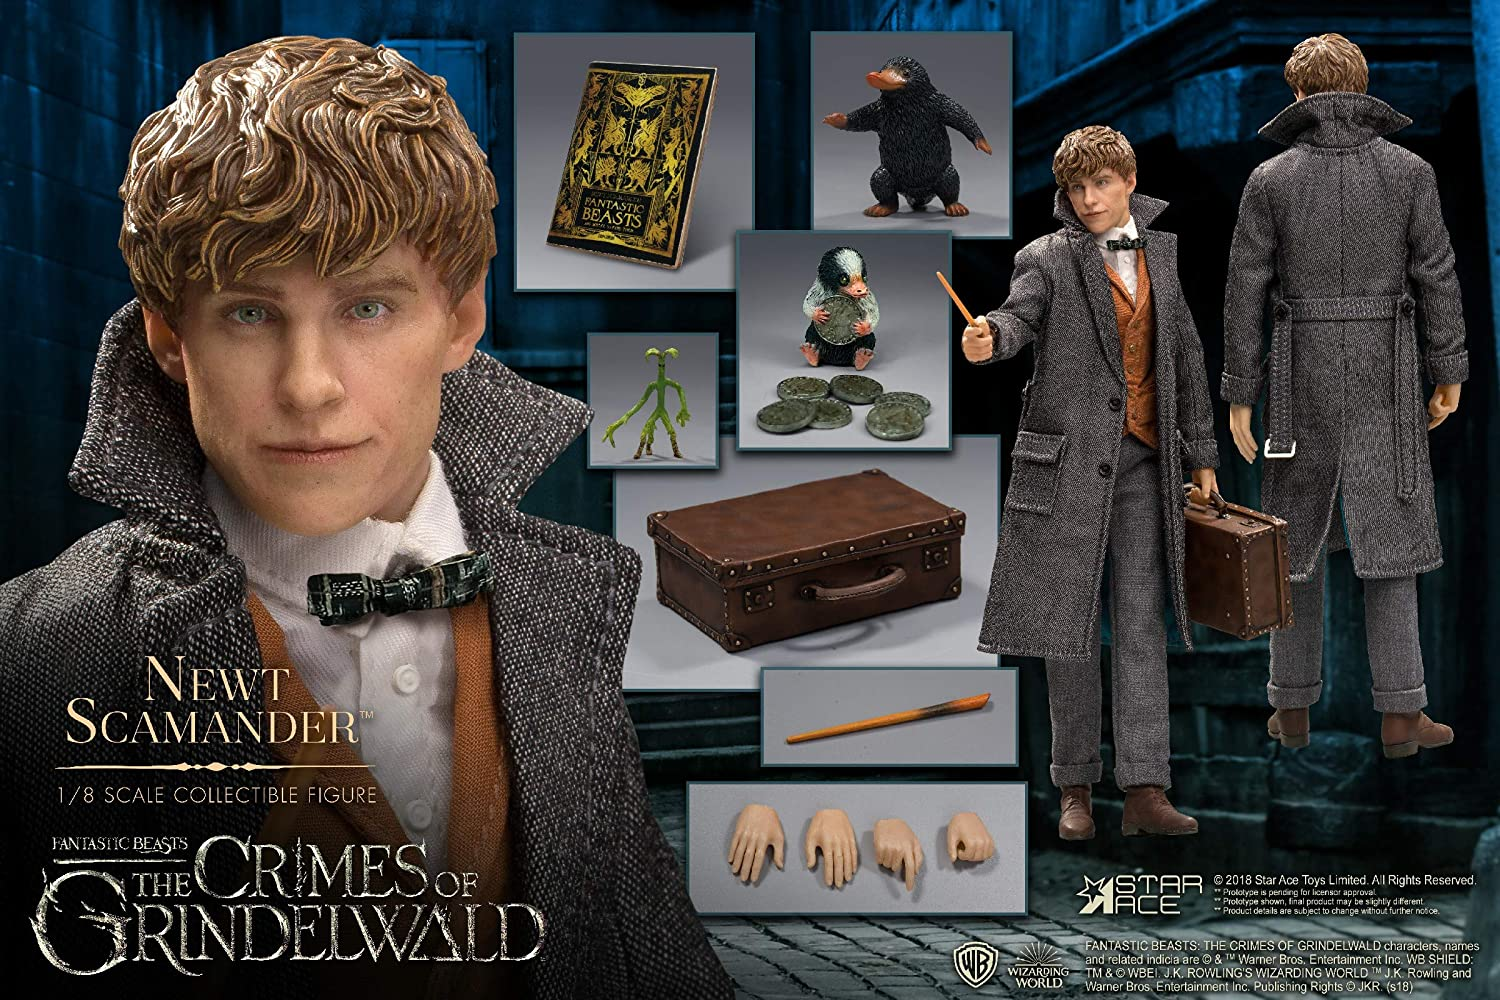 Newt Scamander 1:8 Scale Collectible Action Figure The Crimes of Grindelwald Star Ace Toys Fantastic Beasts